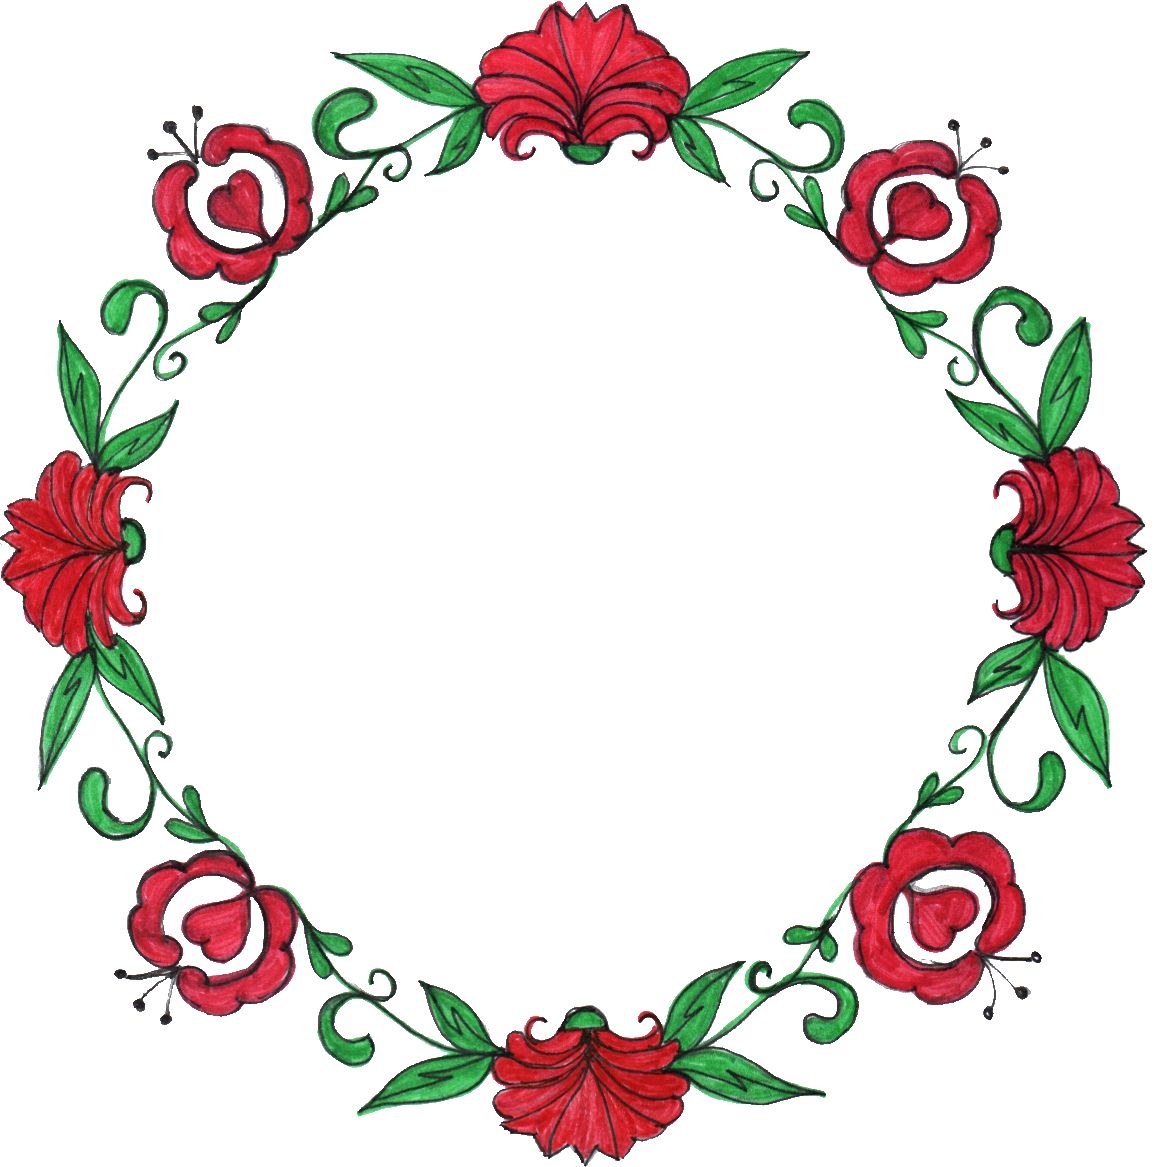 Flower circle border clipart vector transparent library Flower Circle Drawing at GetDrawings.com | Free for personal use ... vector transparent library